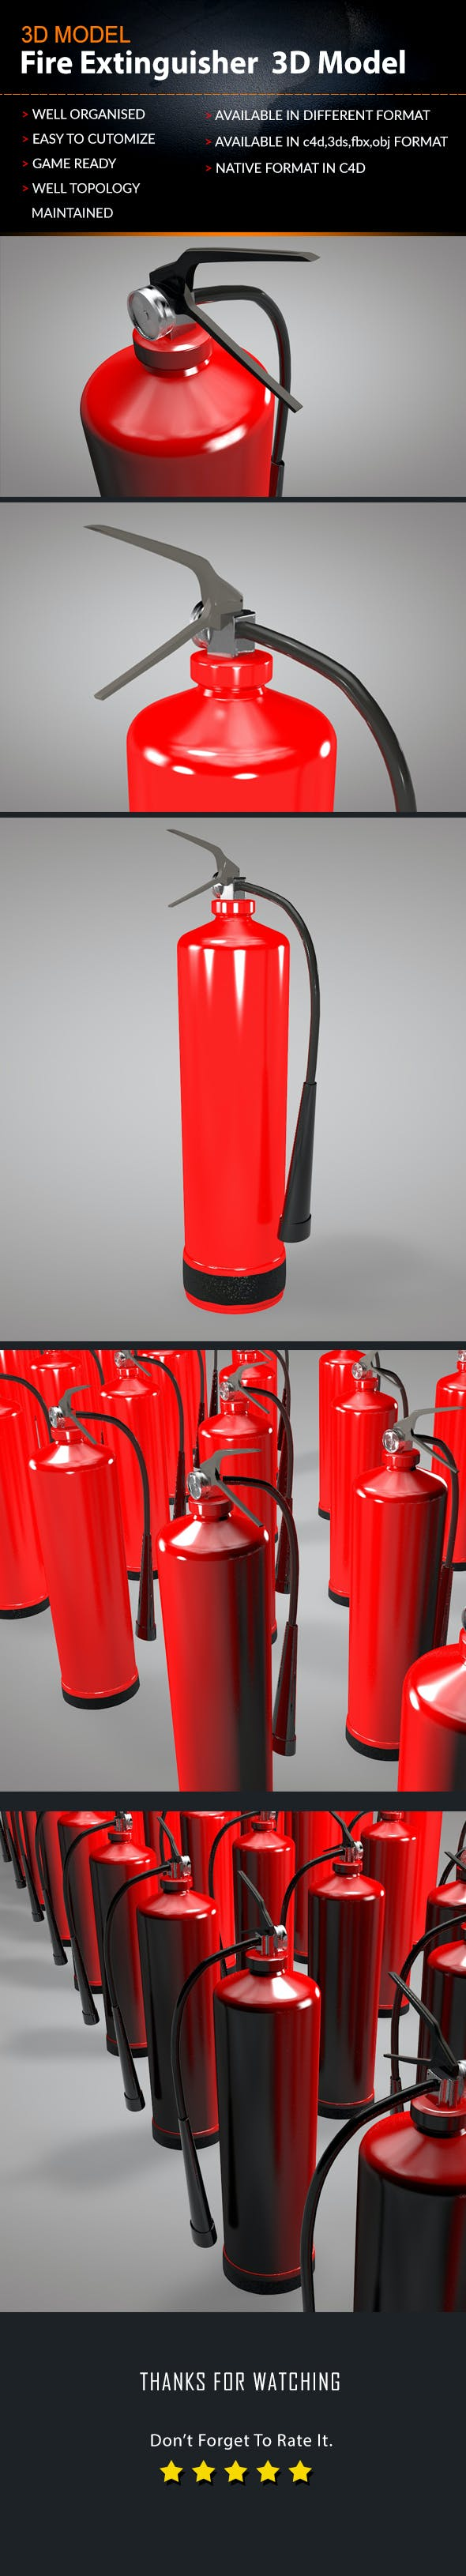 Fire extinguishe 3D model - 3DOcean Item for Sale